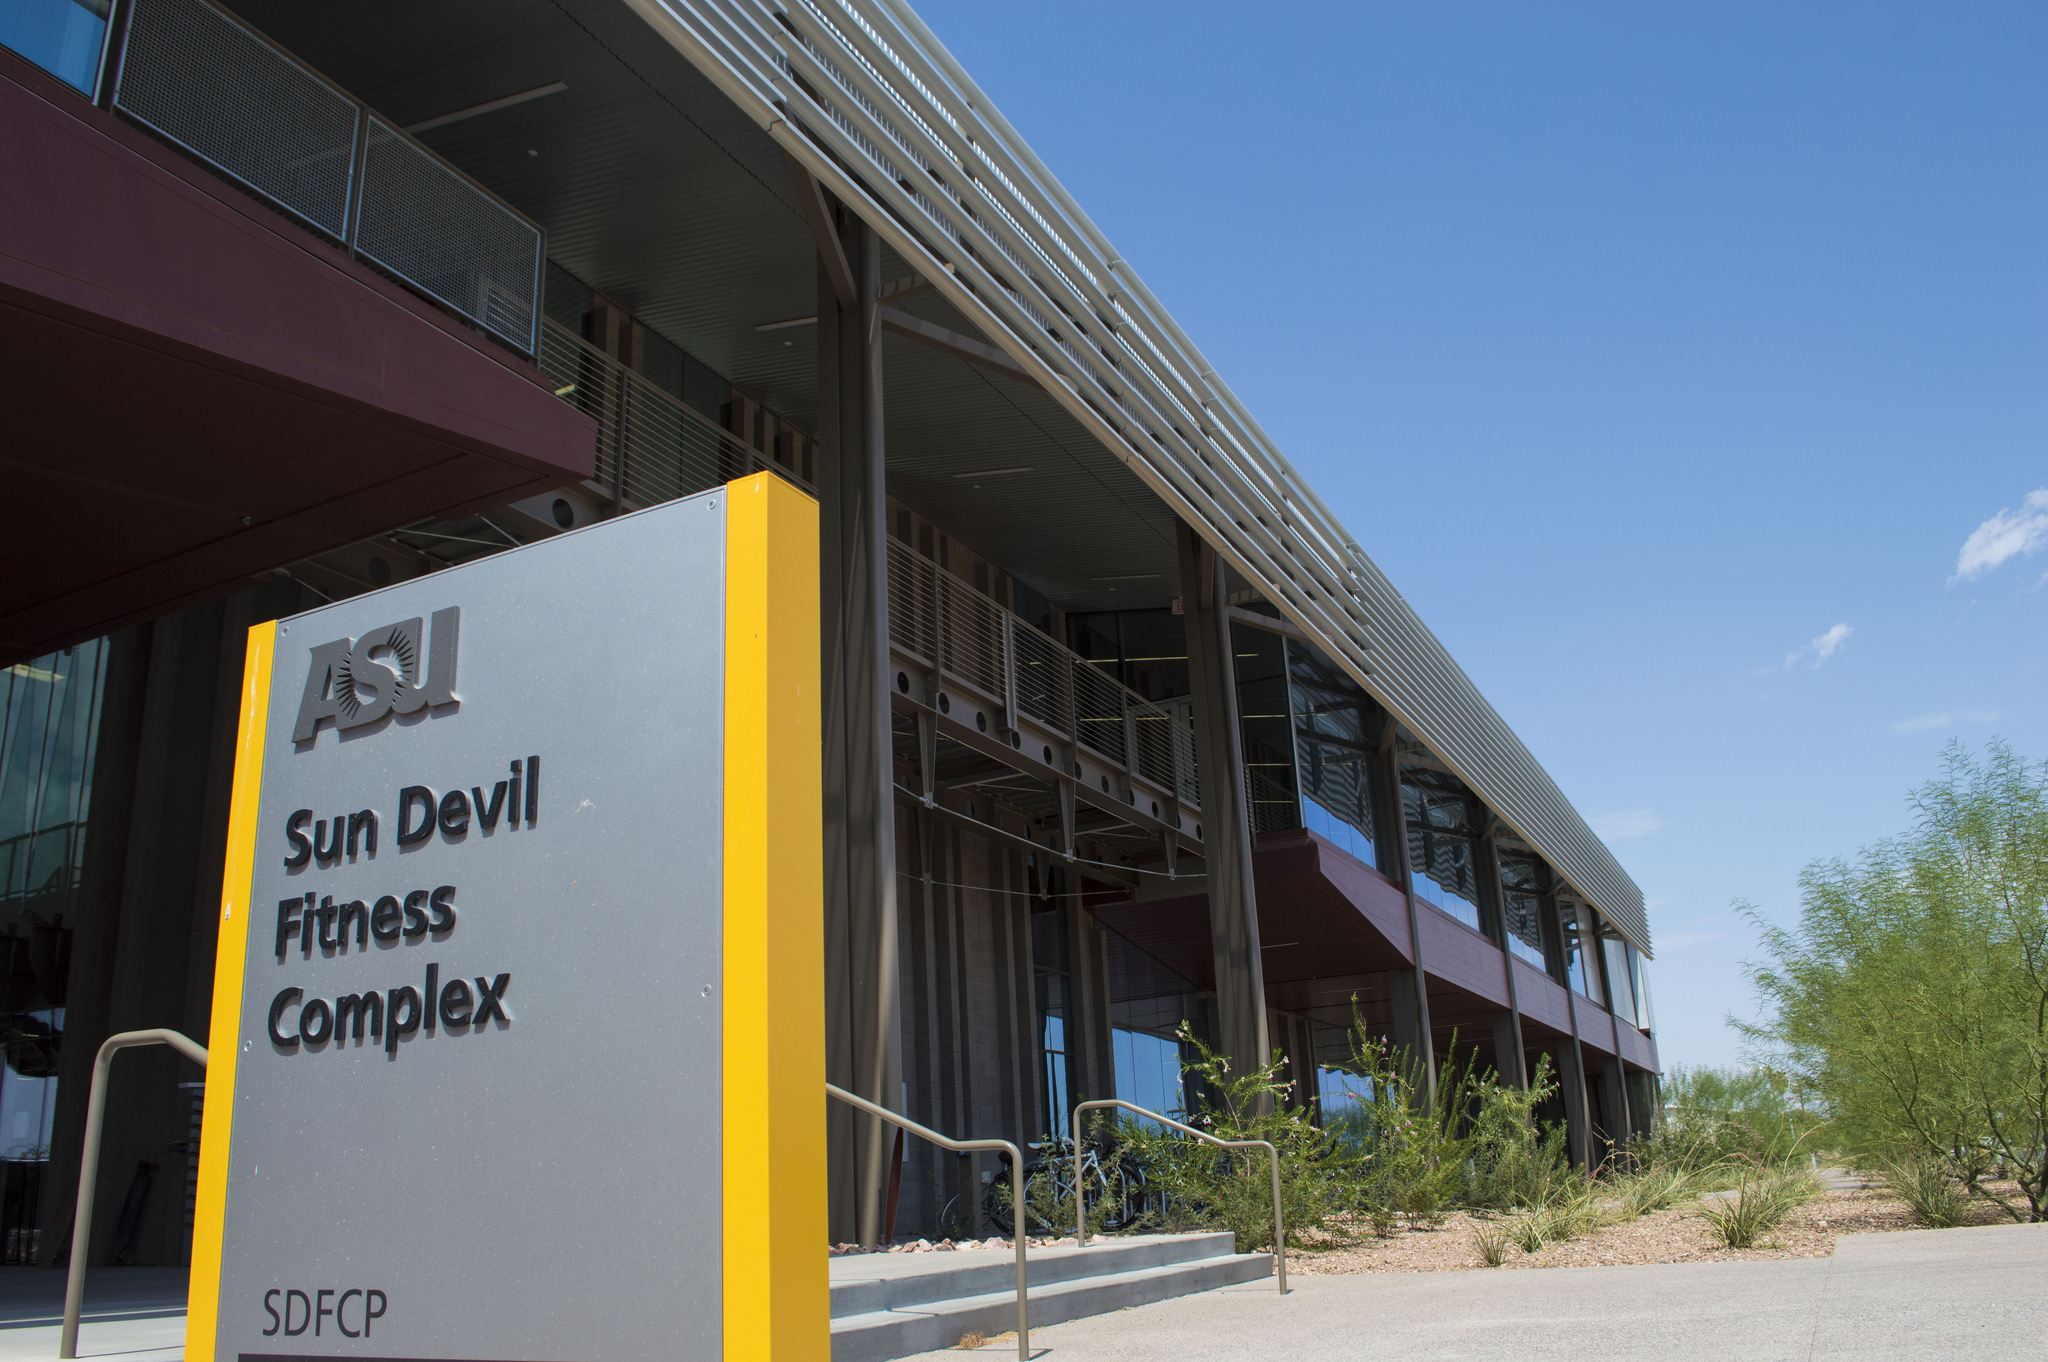 Asu Grabs Gold Medal For Sustainable Fitness Facility